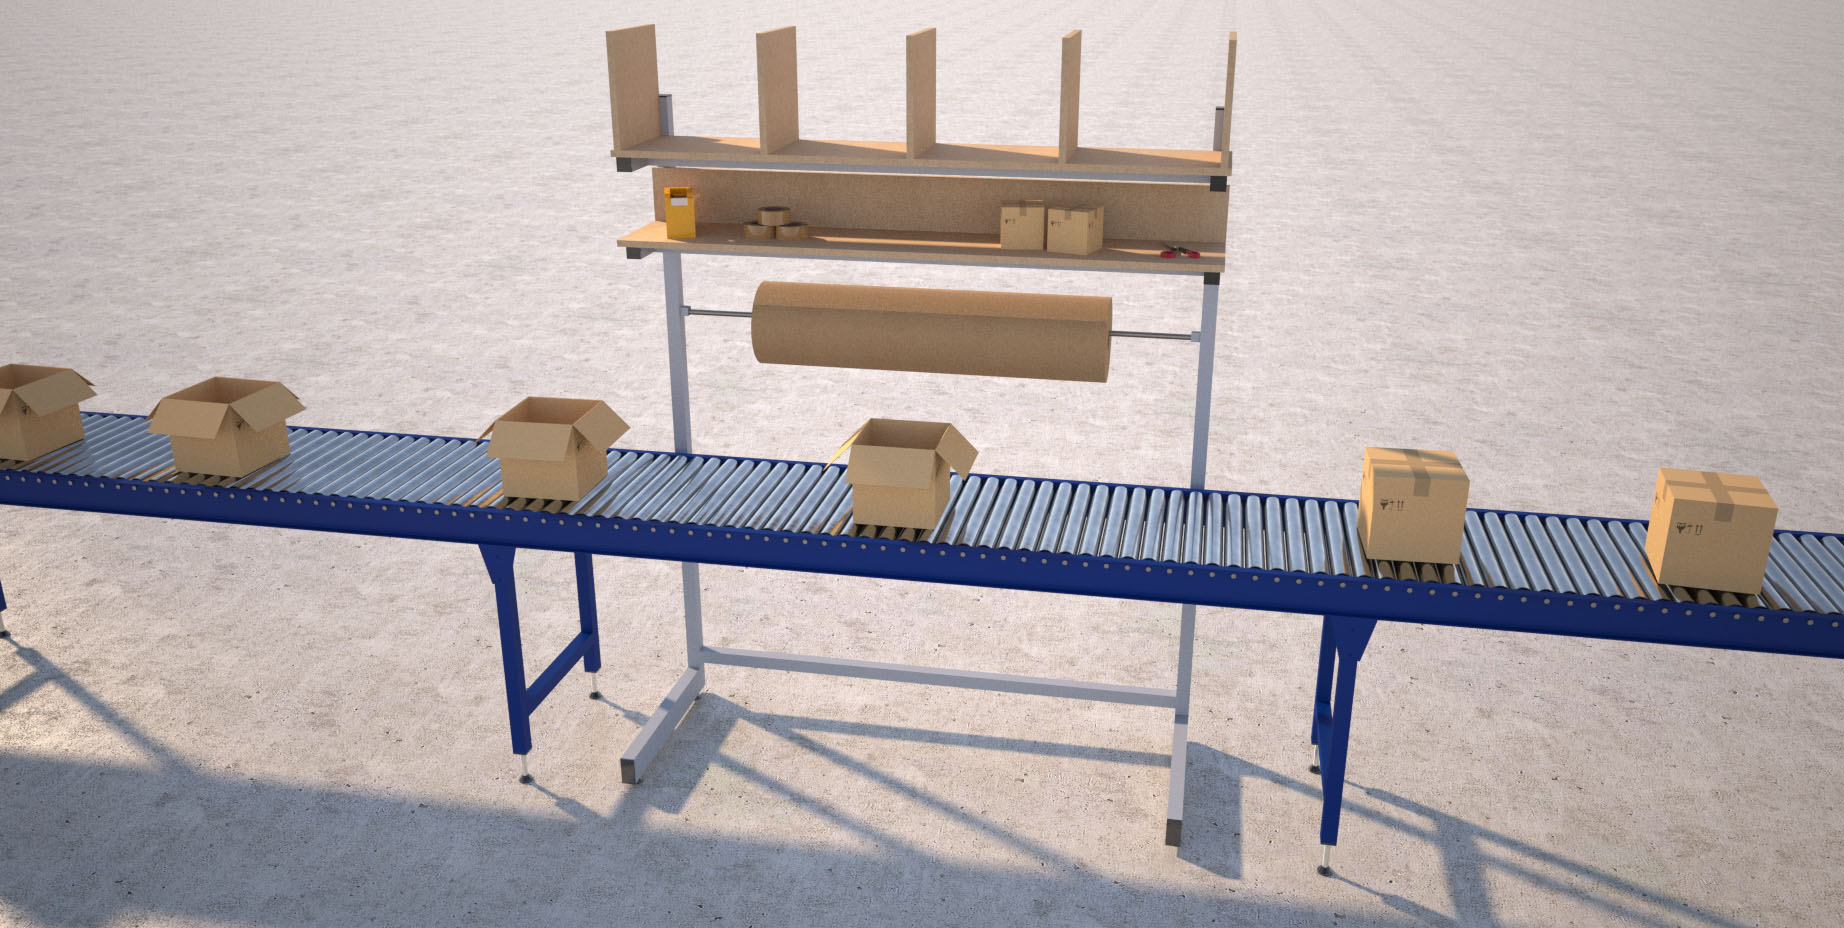 over-conveyor-packing-mdf